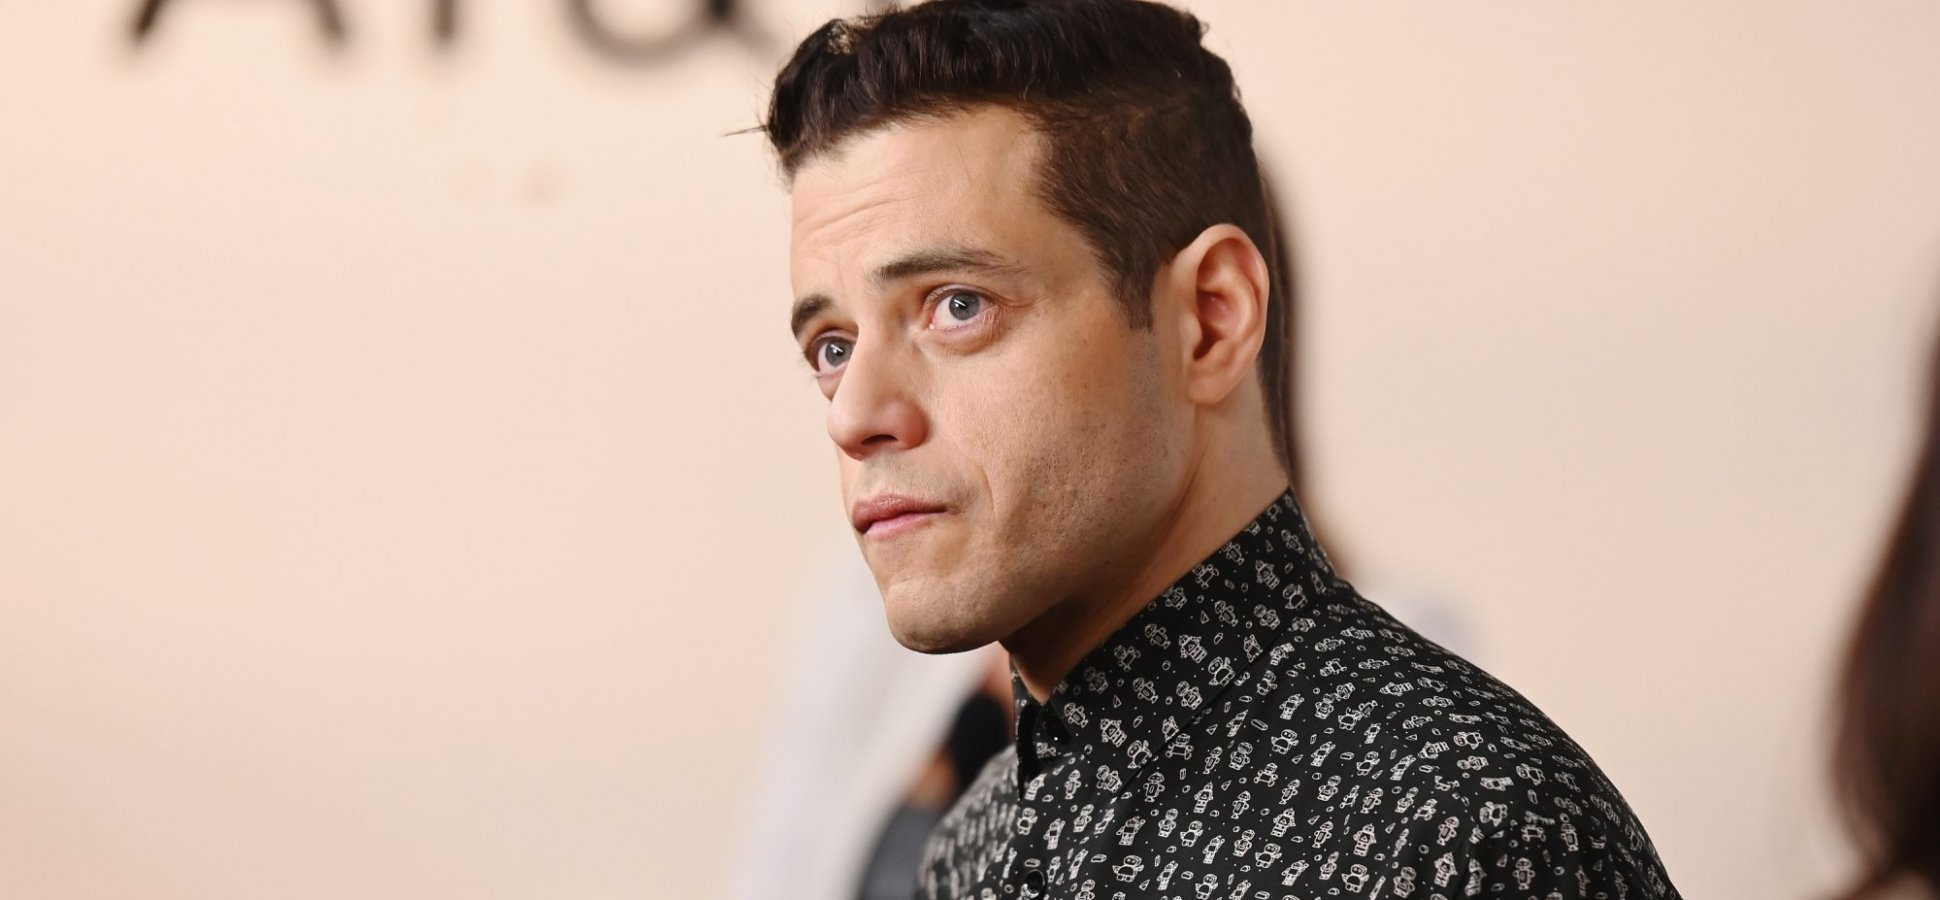 Why Rami Malek's Choice of Self-Talk May Have Led to His Academy Award